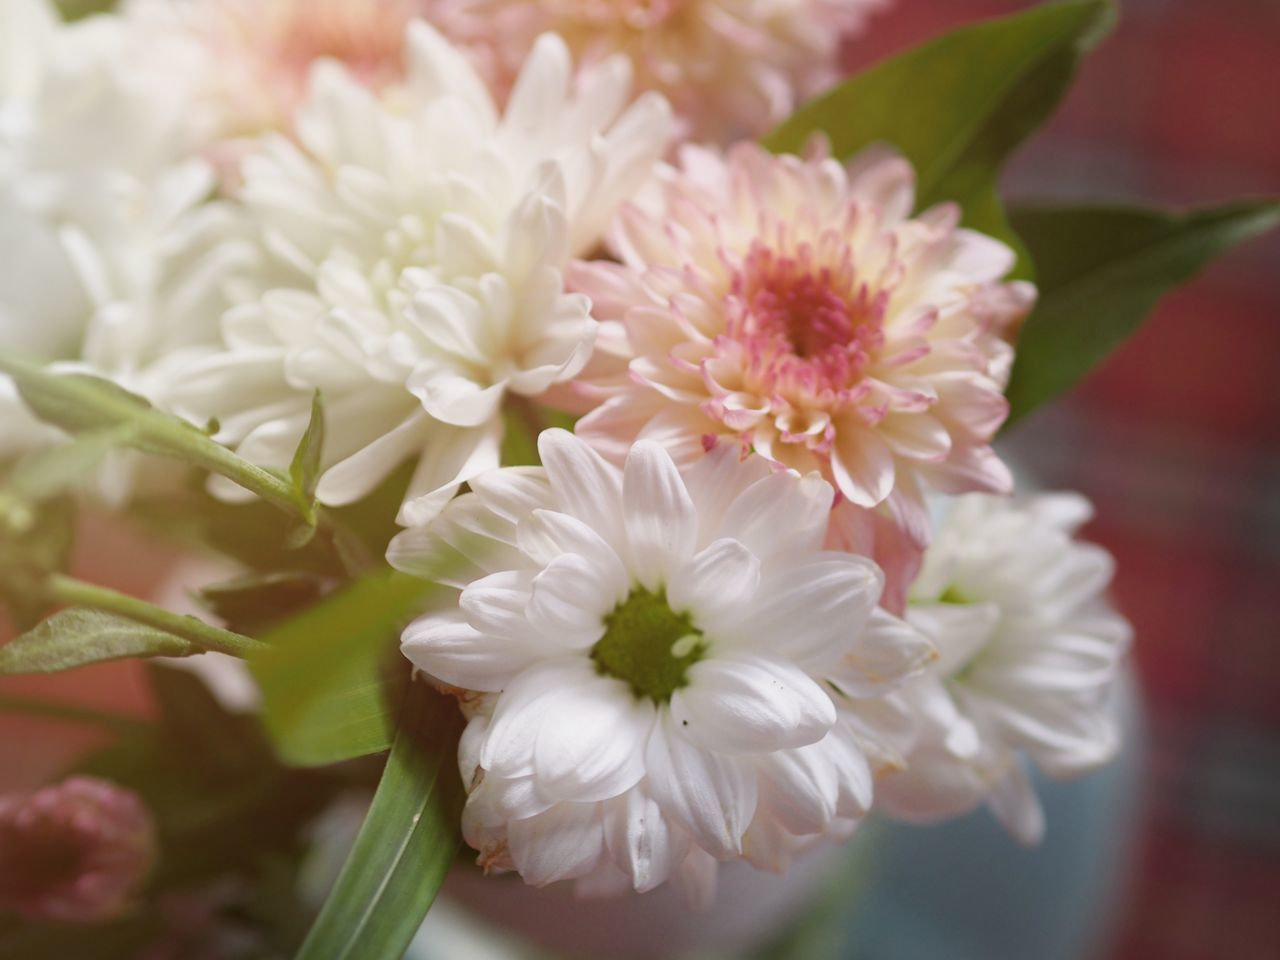 Flower Flower Head Blossom White Color Fragility Close-up Petal Plant Beauty In Nature No People Nature Springtime Freshness Peony  Day Indoors  EyeEm Selects Outdoors Beauty In Nature Nature Freshness Plant